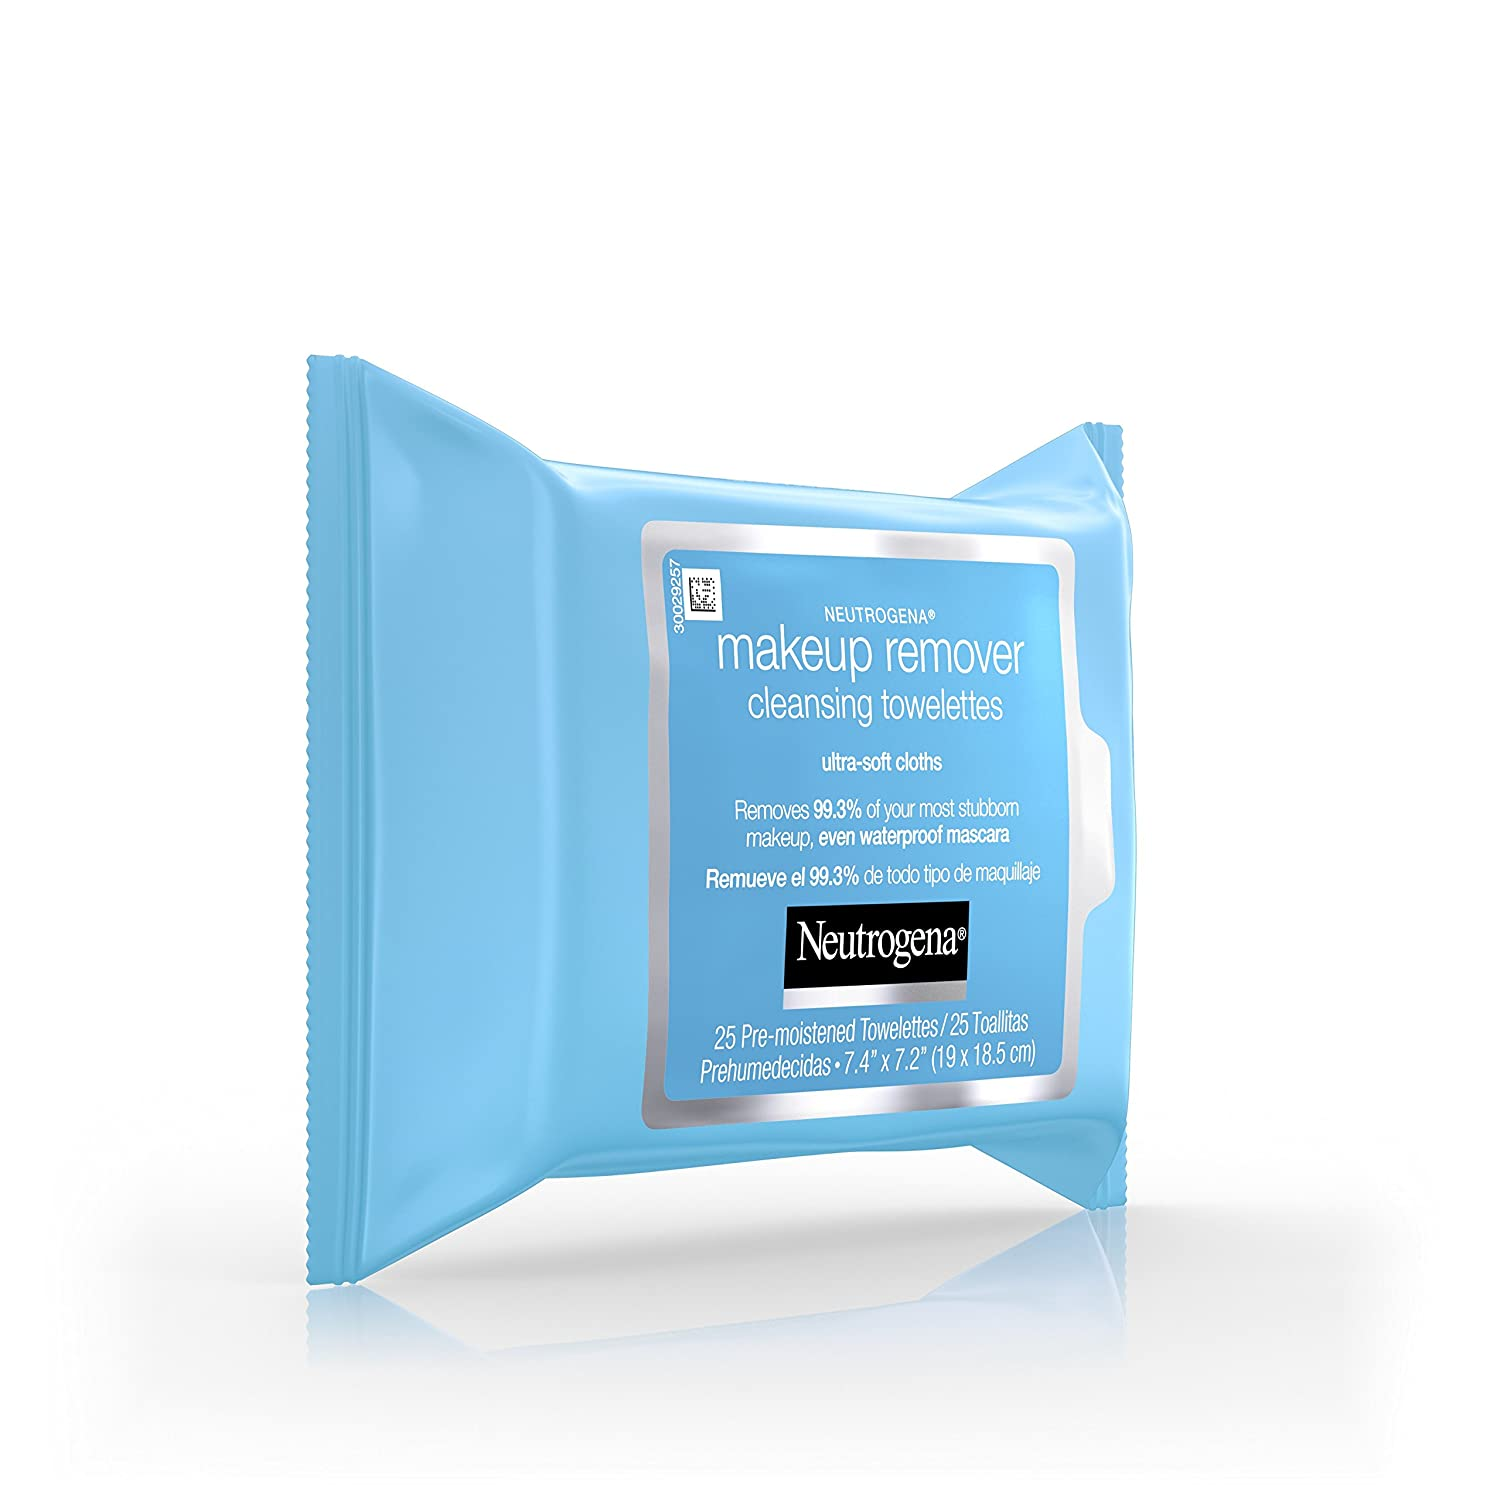 Amazon.com: Neutrogena Make-Up Remover Towelettes 25 Count (Refill) (3 Pack): Beauty